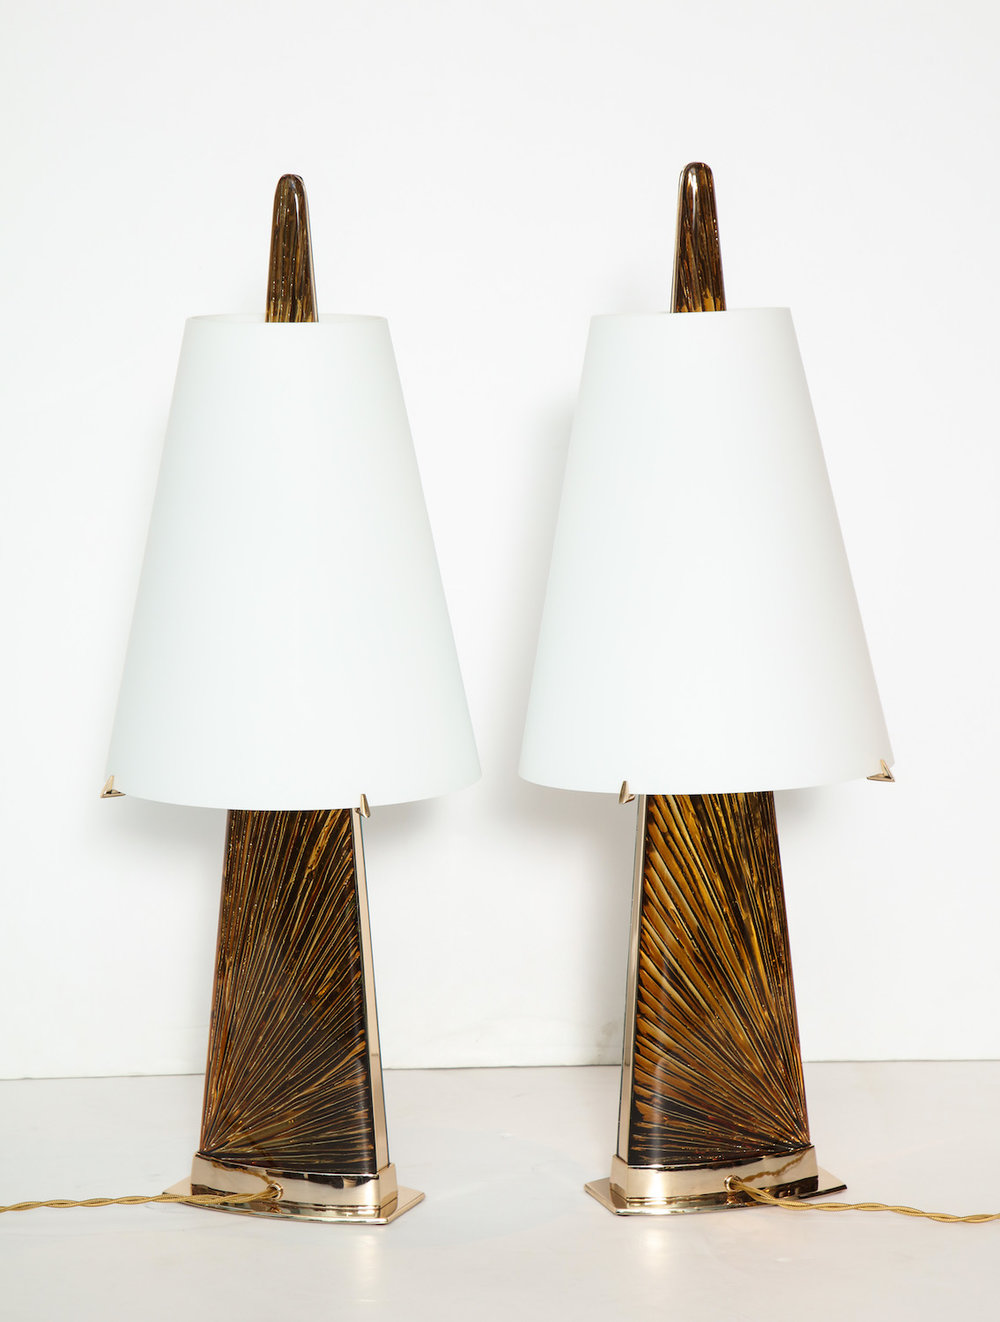 Ghiro Abisso Lamps 7.jpg